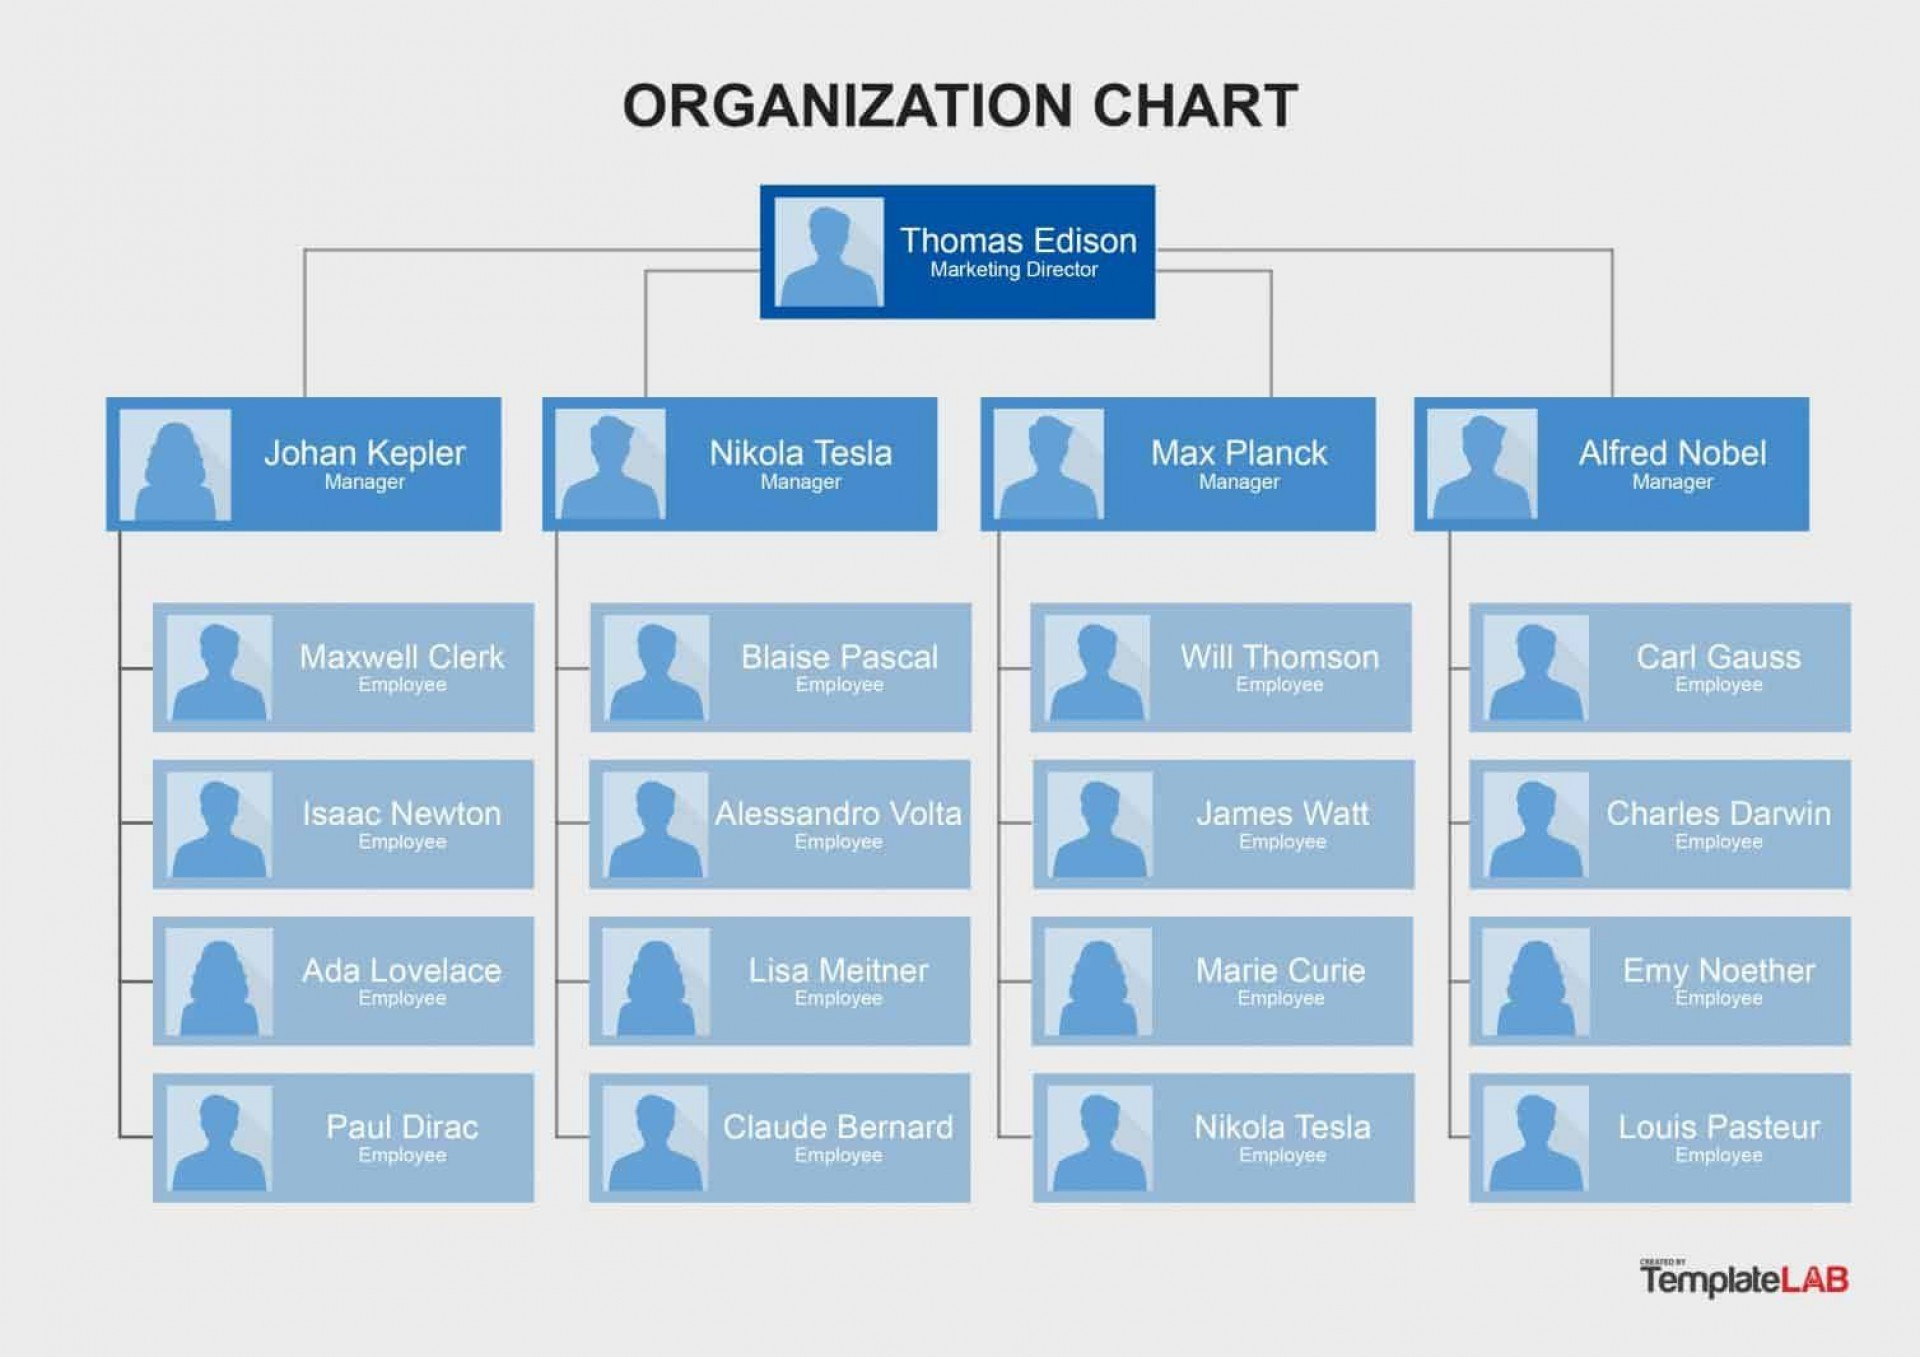 009 Rare Organizational Chart Template Excel Image  Org Download Free 20101920